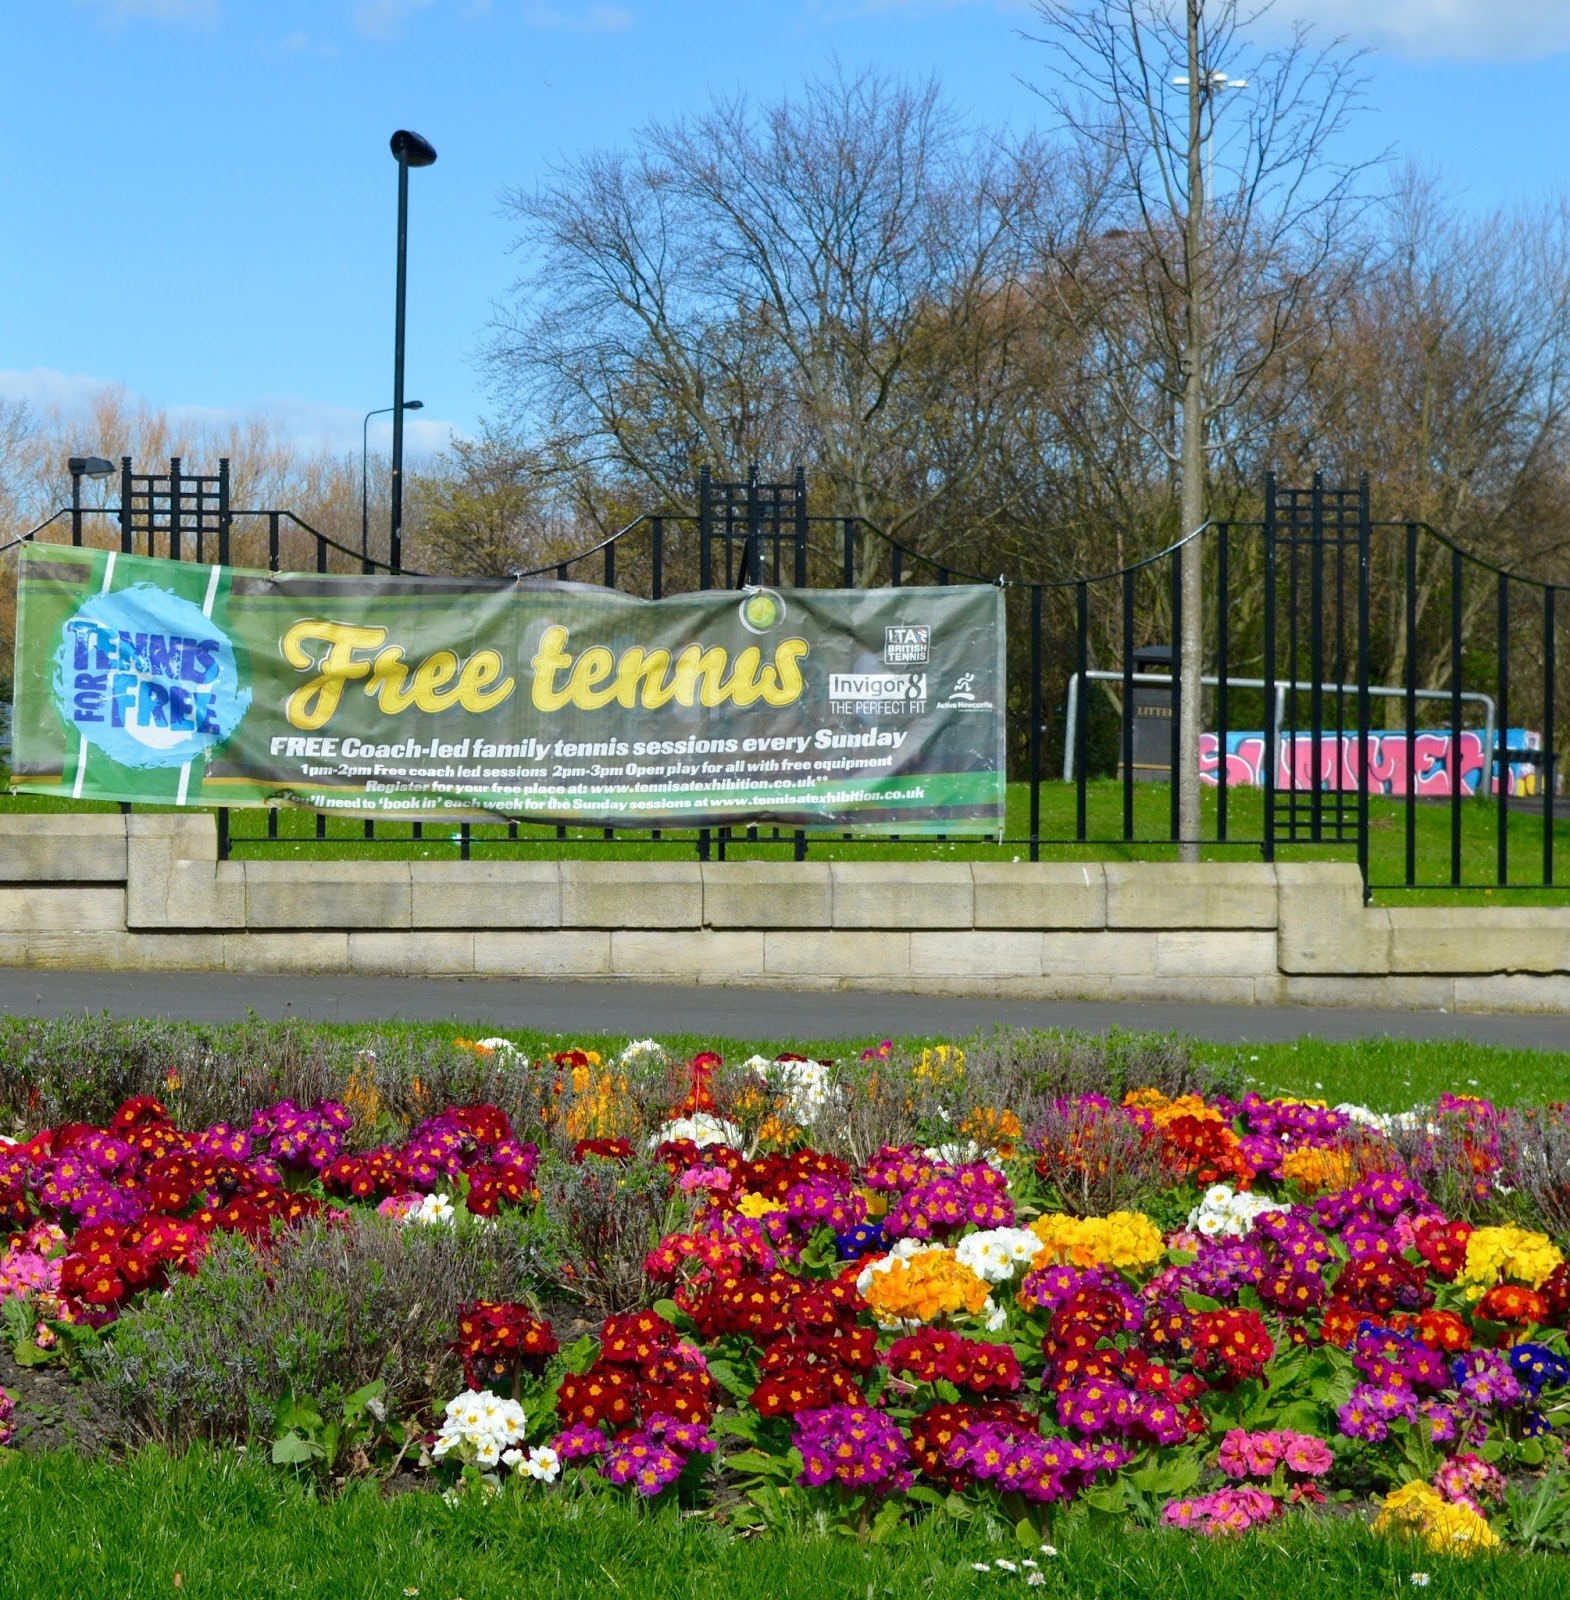 How to access free tennis sessions for kids across the North East this summer with LTA and #TennisForKids - free tennis at Exhibition park, Newcastle